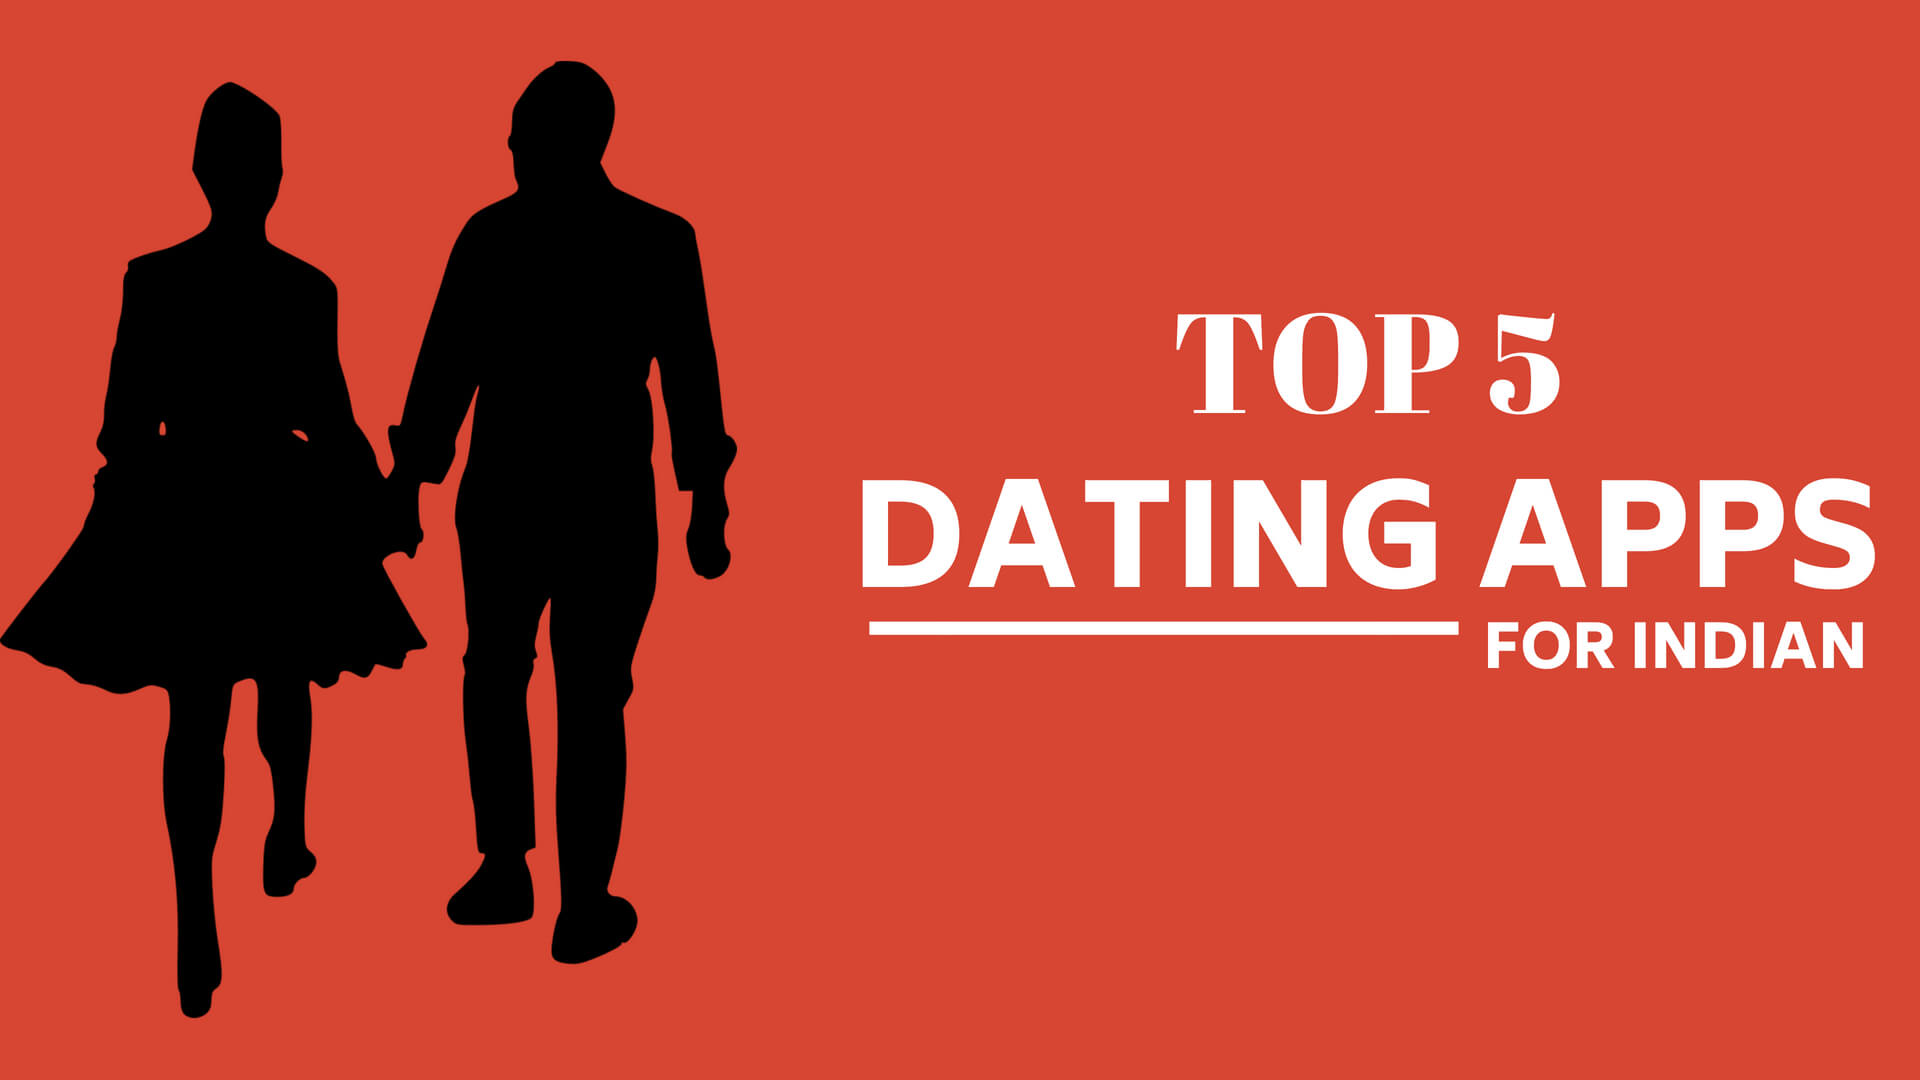 Best free dating apps 2019 in india